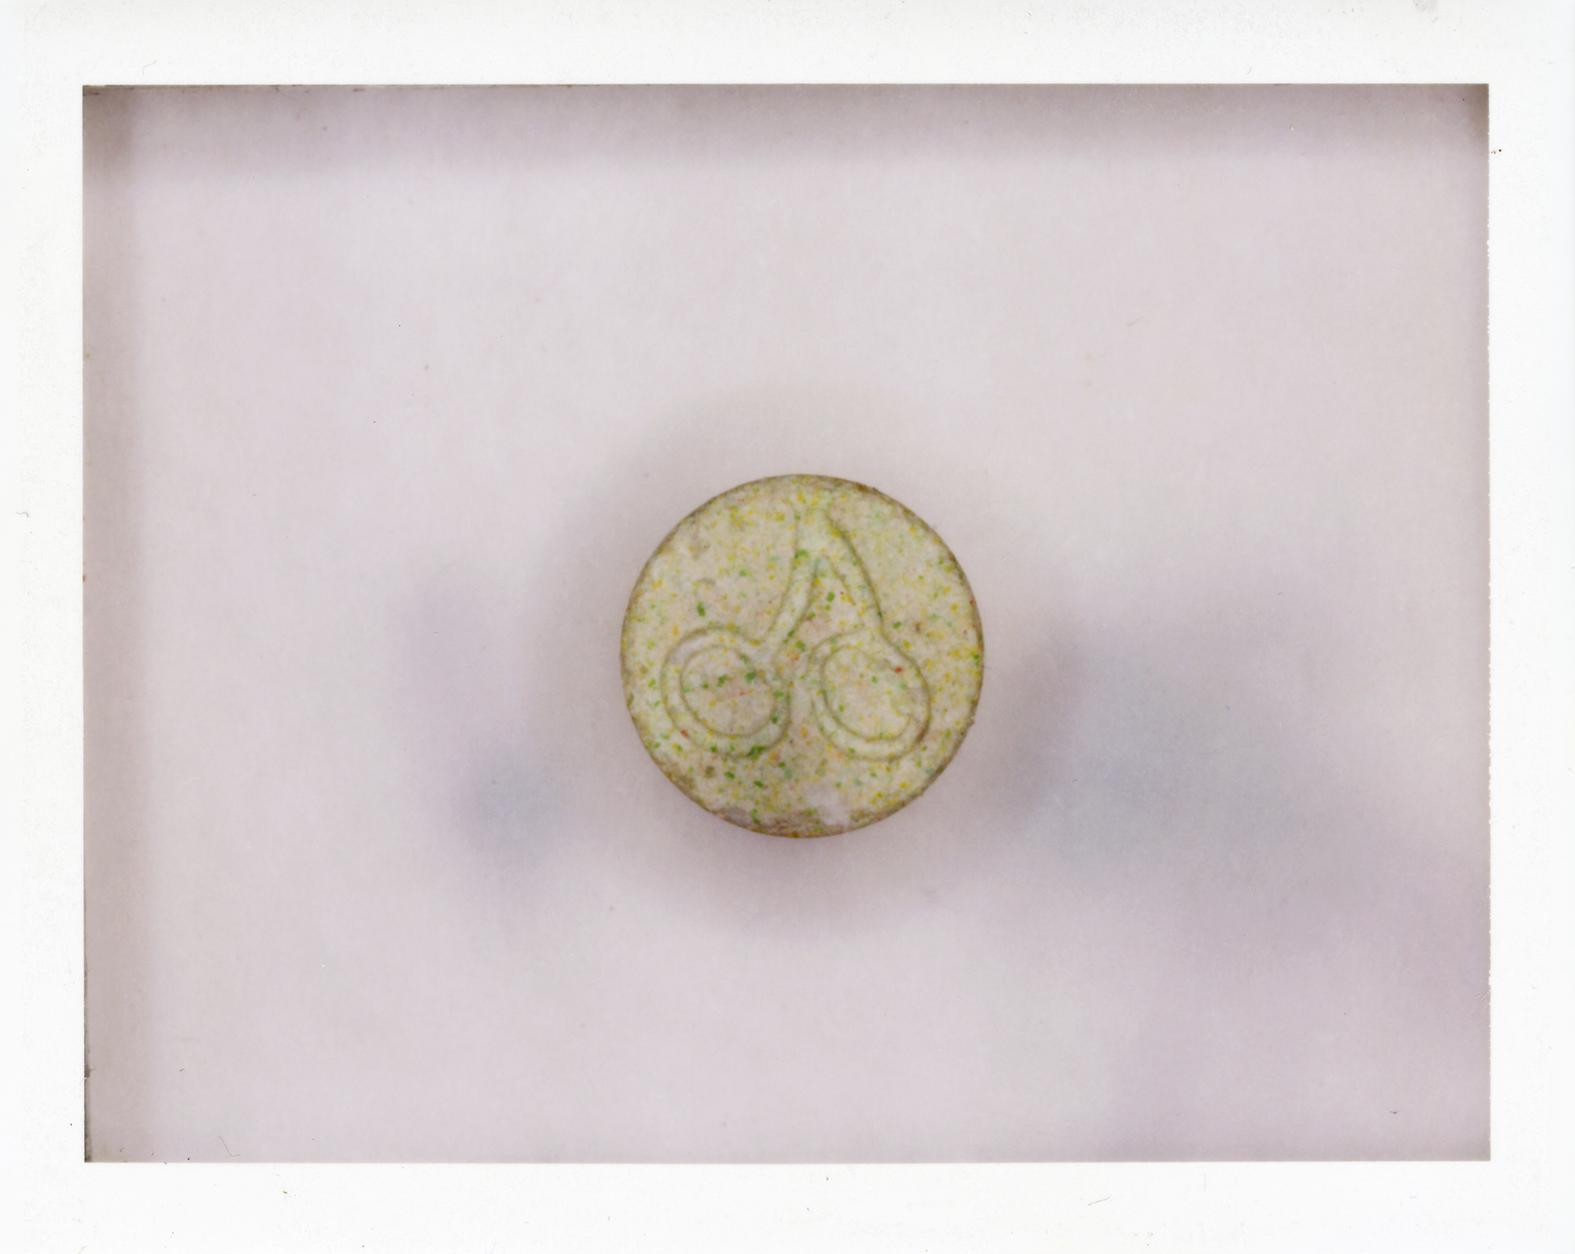 Photos of Legendary Ecstasy Pills From the Last 20 Years - VICE